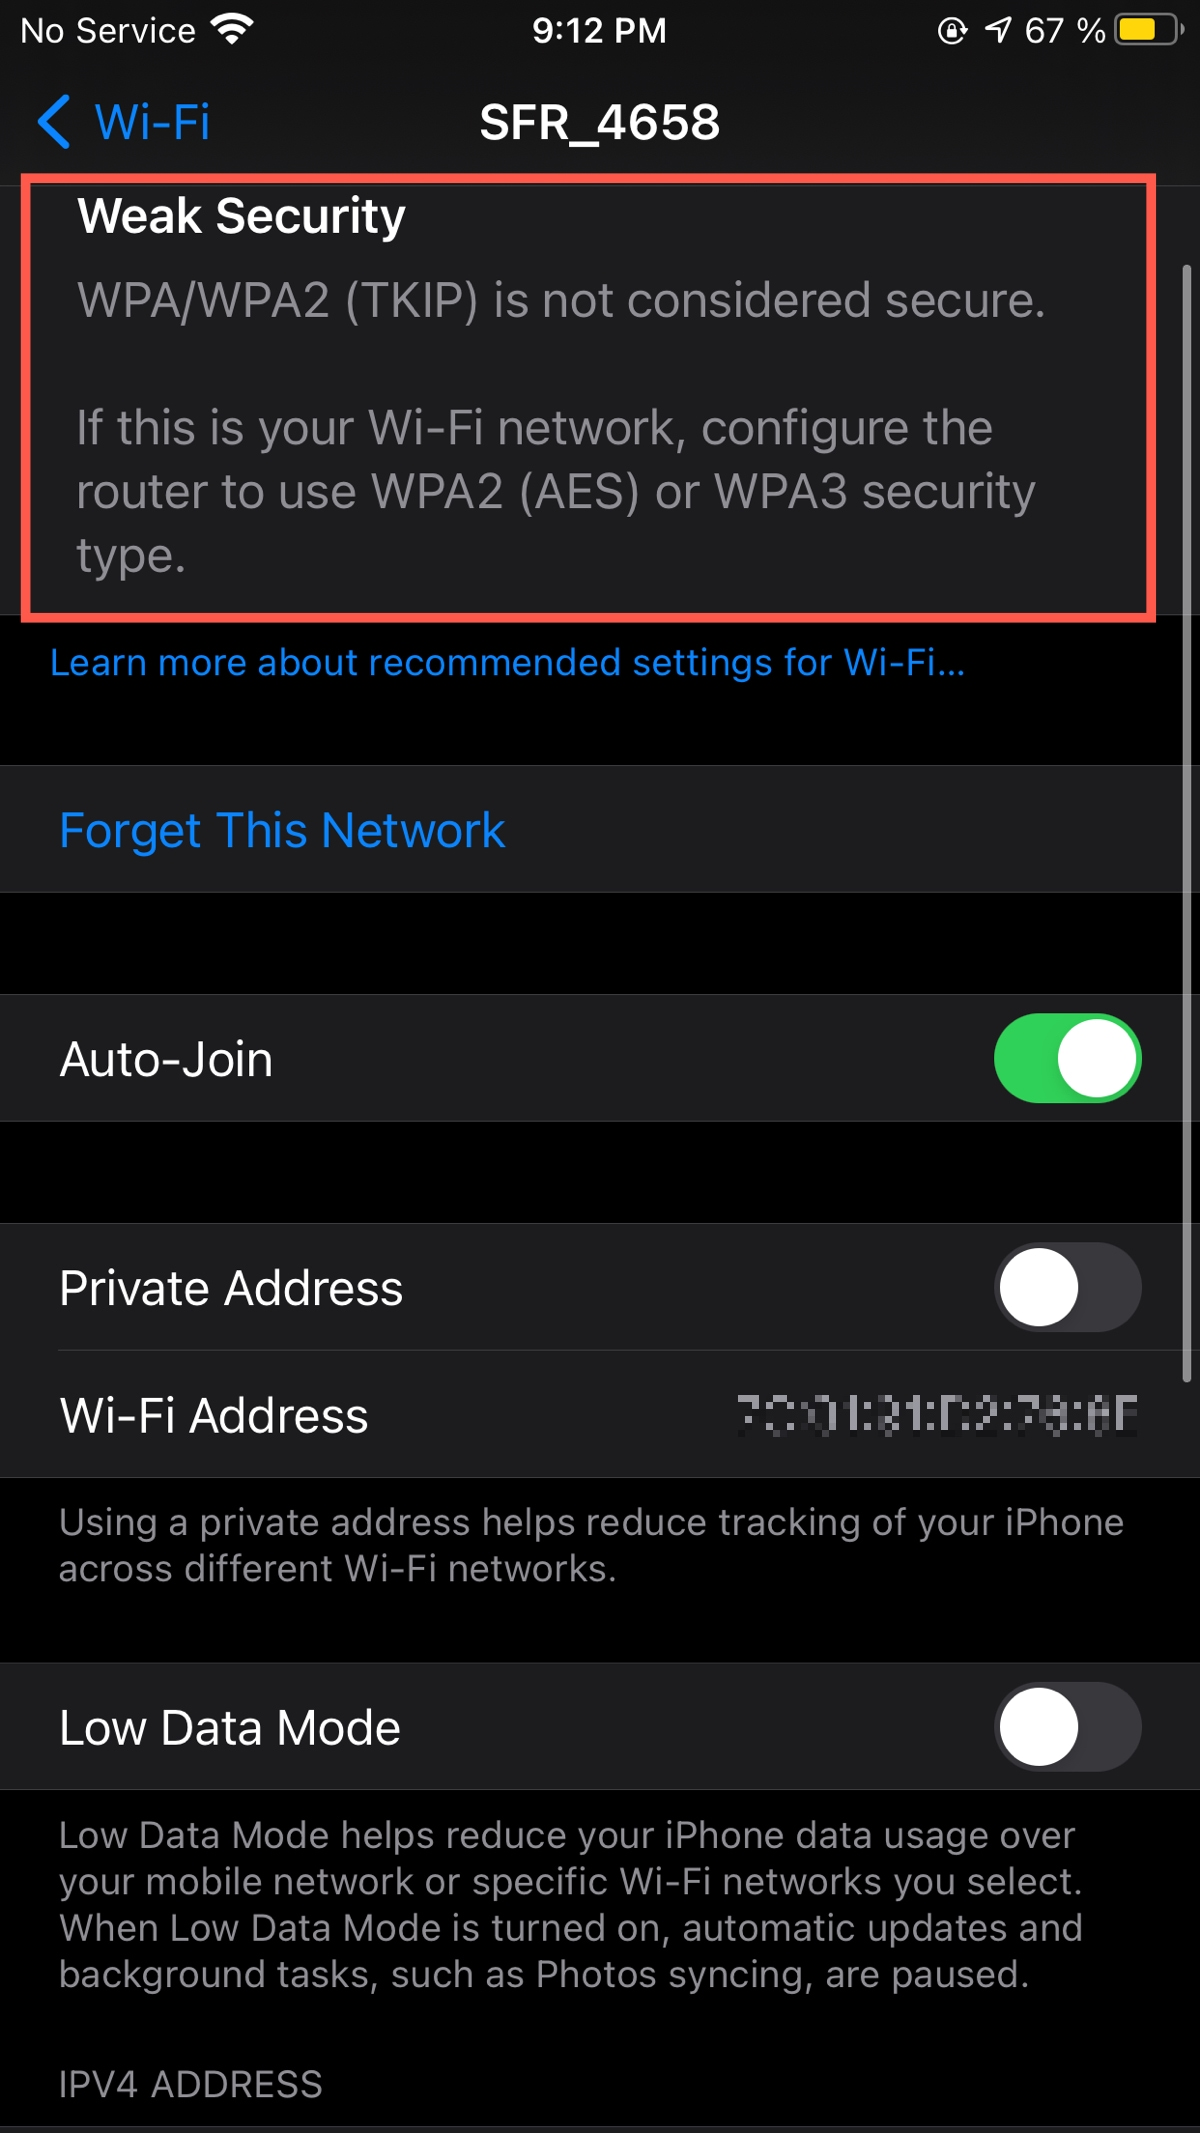 Weak Security Warning for Wi-Fi on iPhone